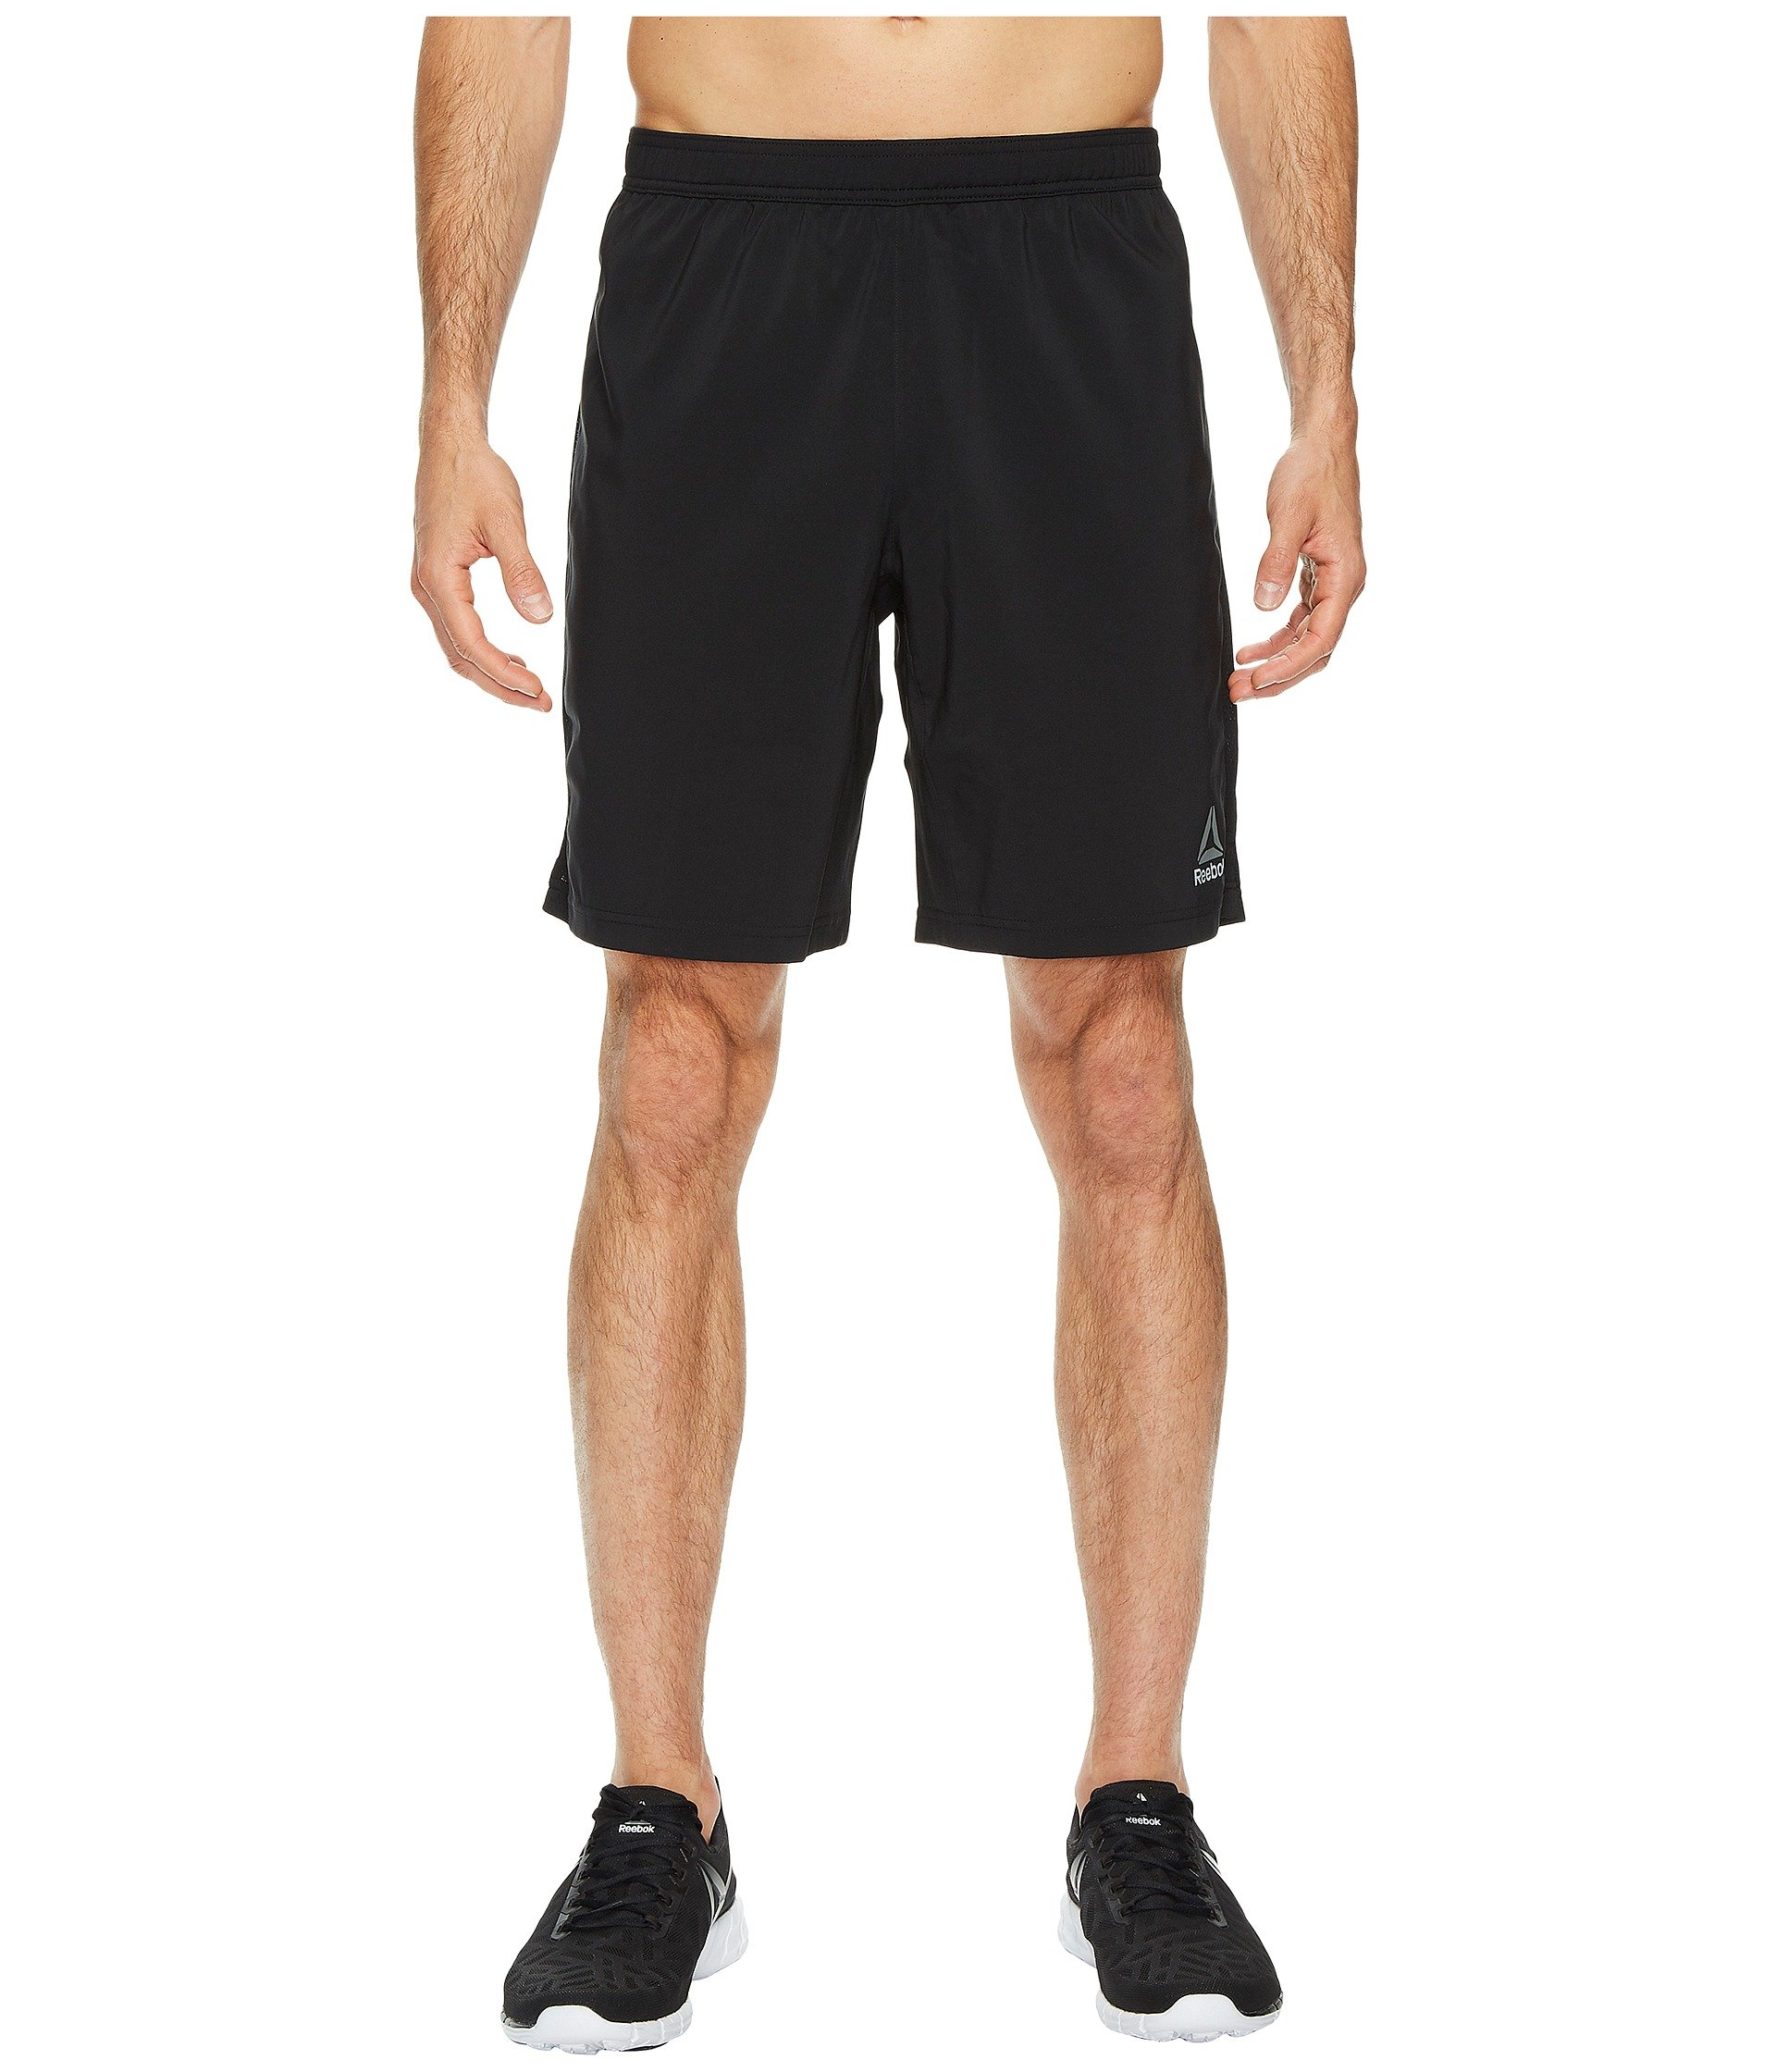 Reebok Performance Short, Black, XX-Large by Reebok